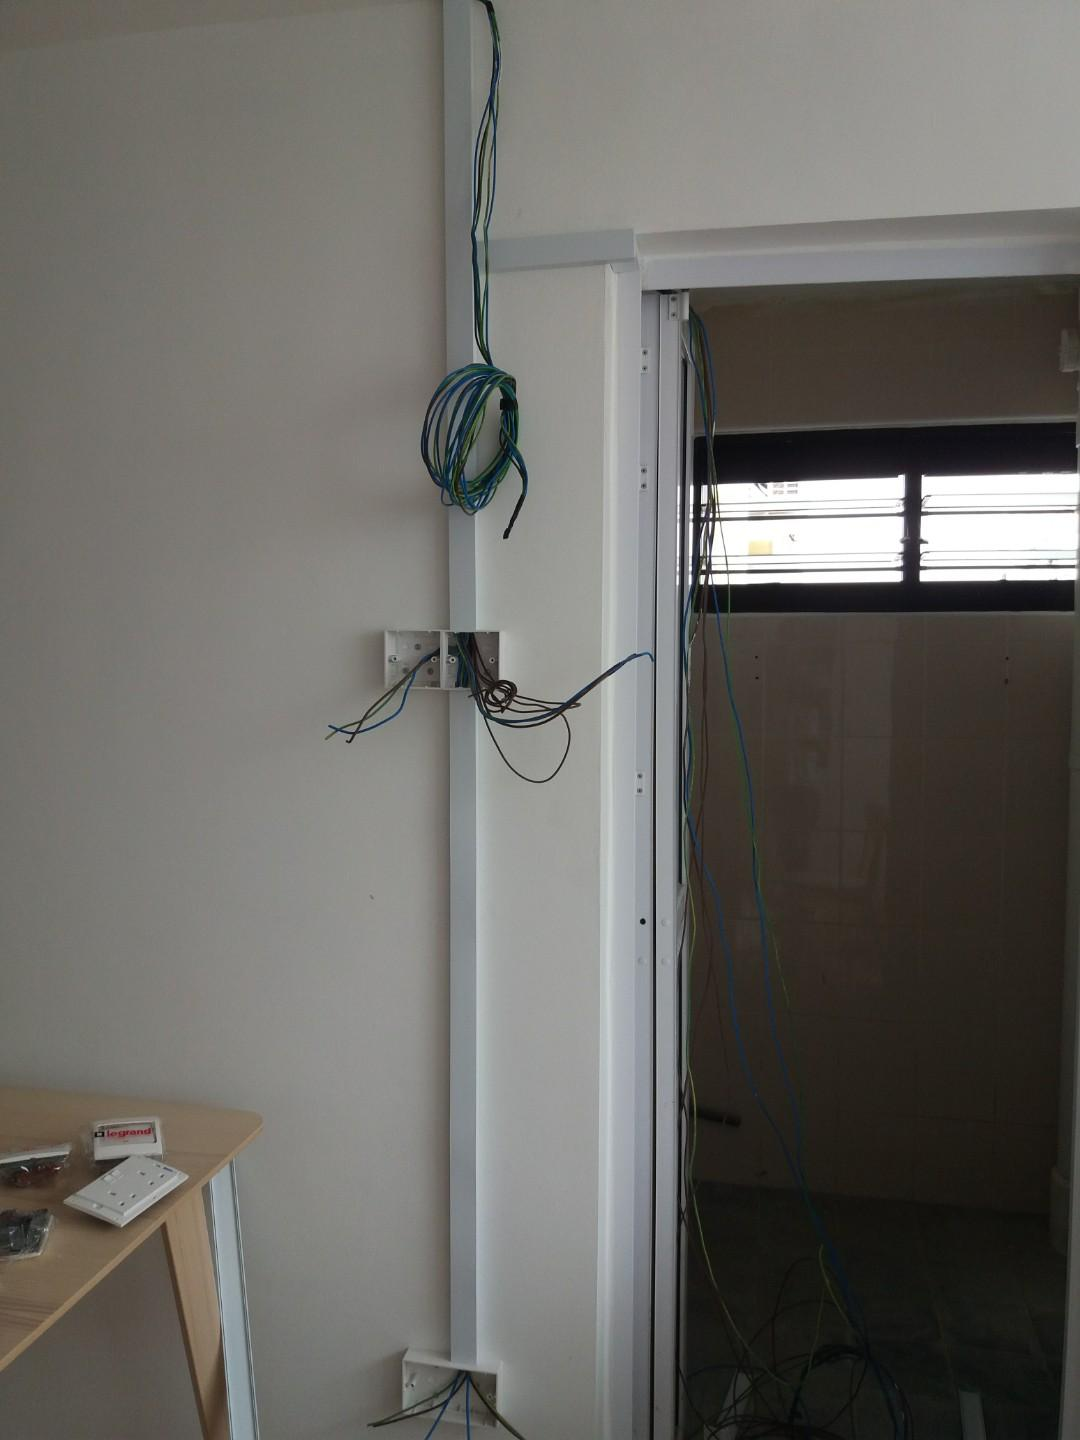 Electrician & Painting Service.